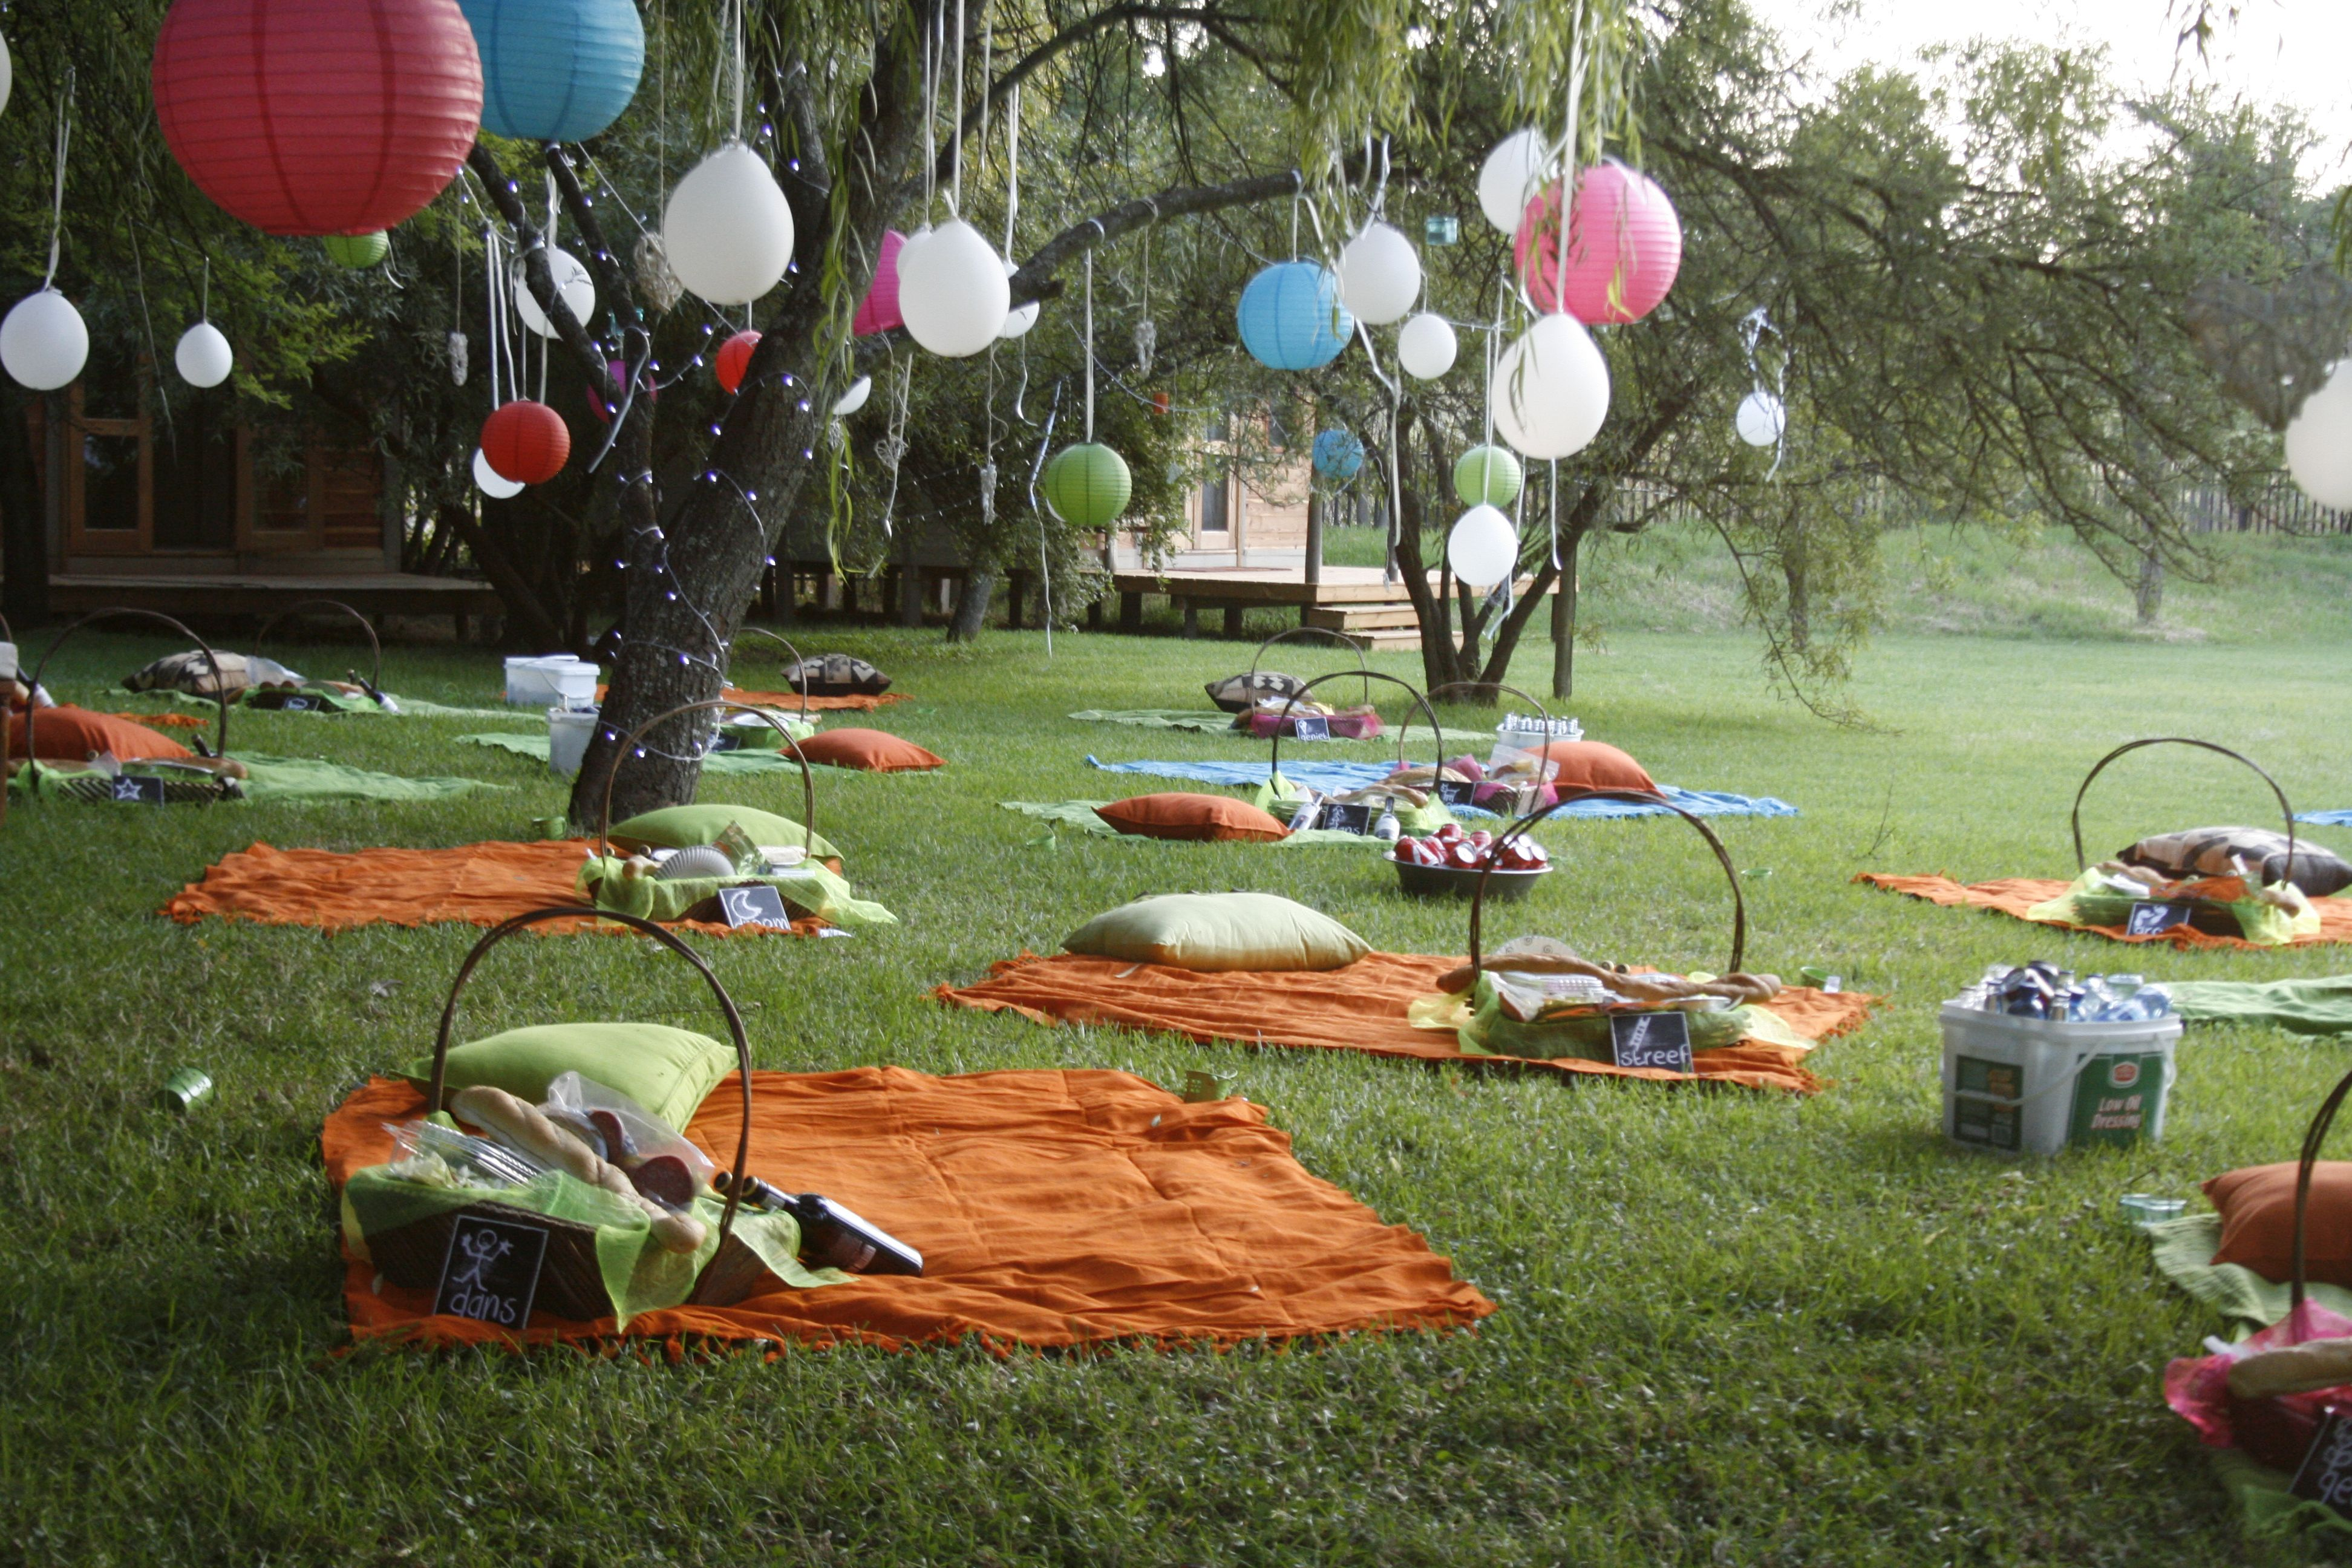 23 Unconventional But Totally Awesome Wedding Ideas For An Outdoor Instead Of Having Tables Set Up Picnic Blankets